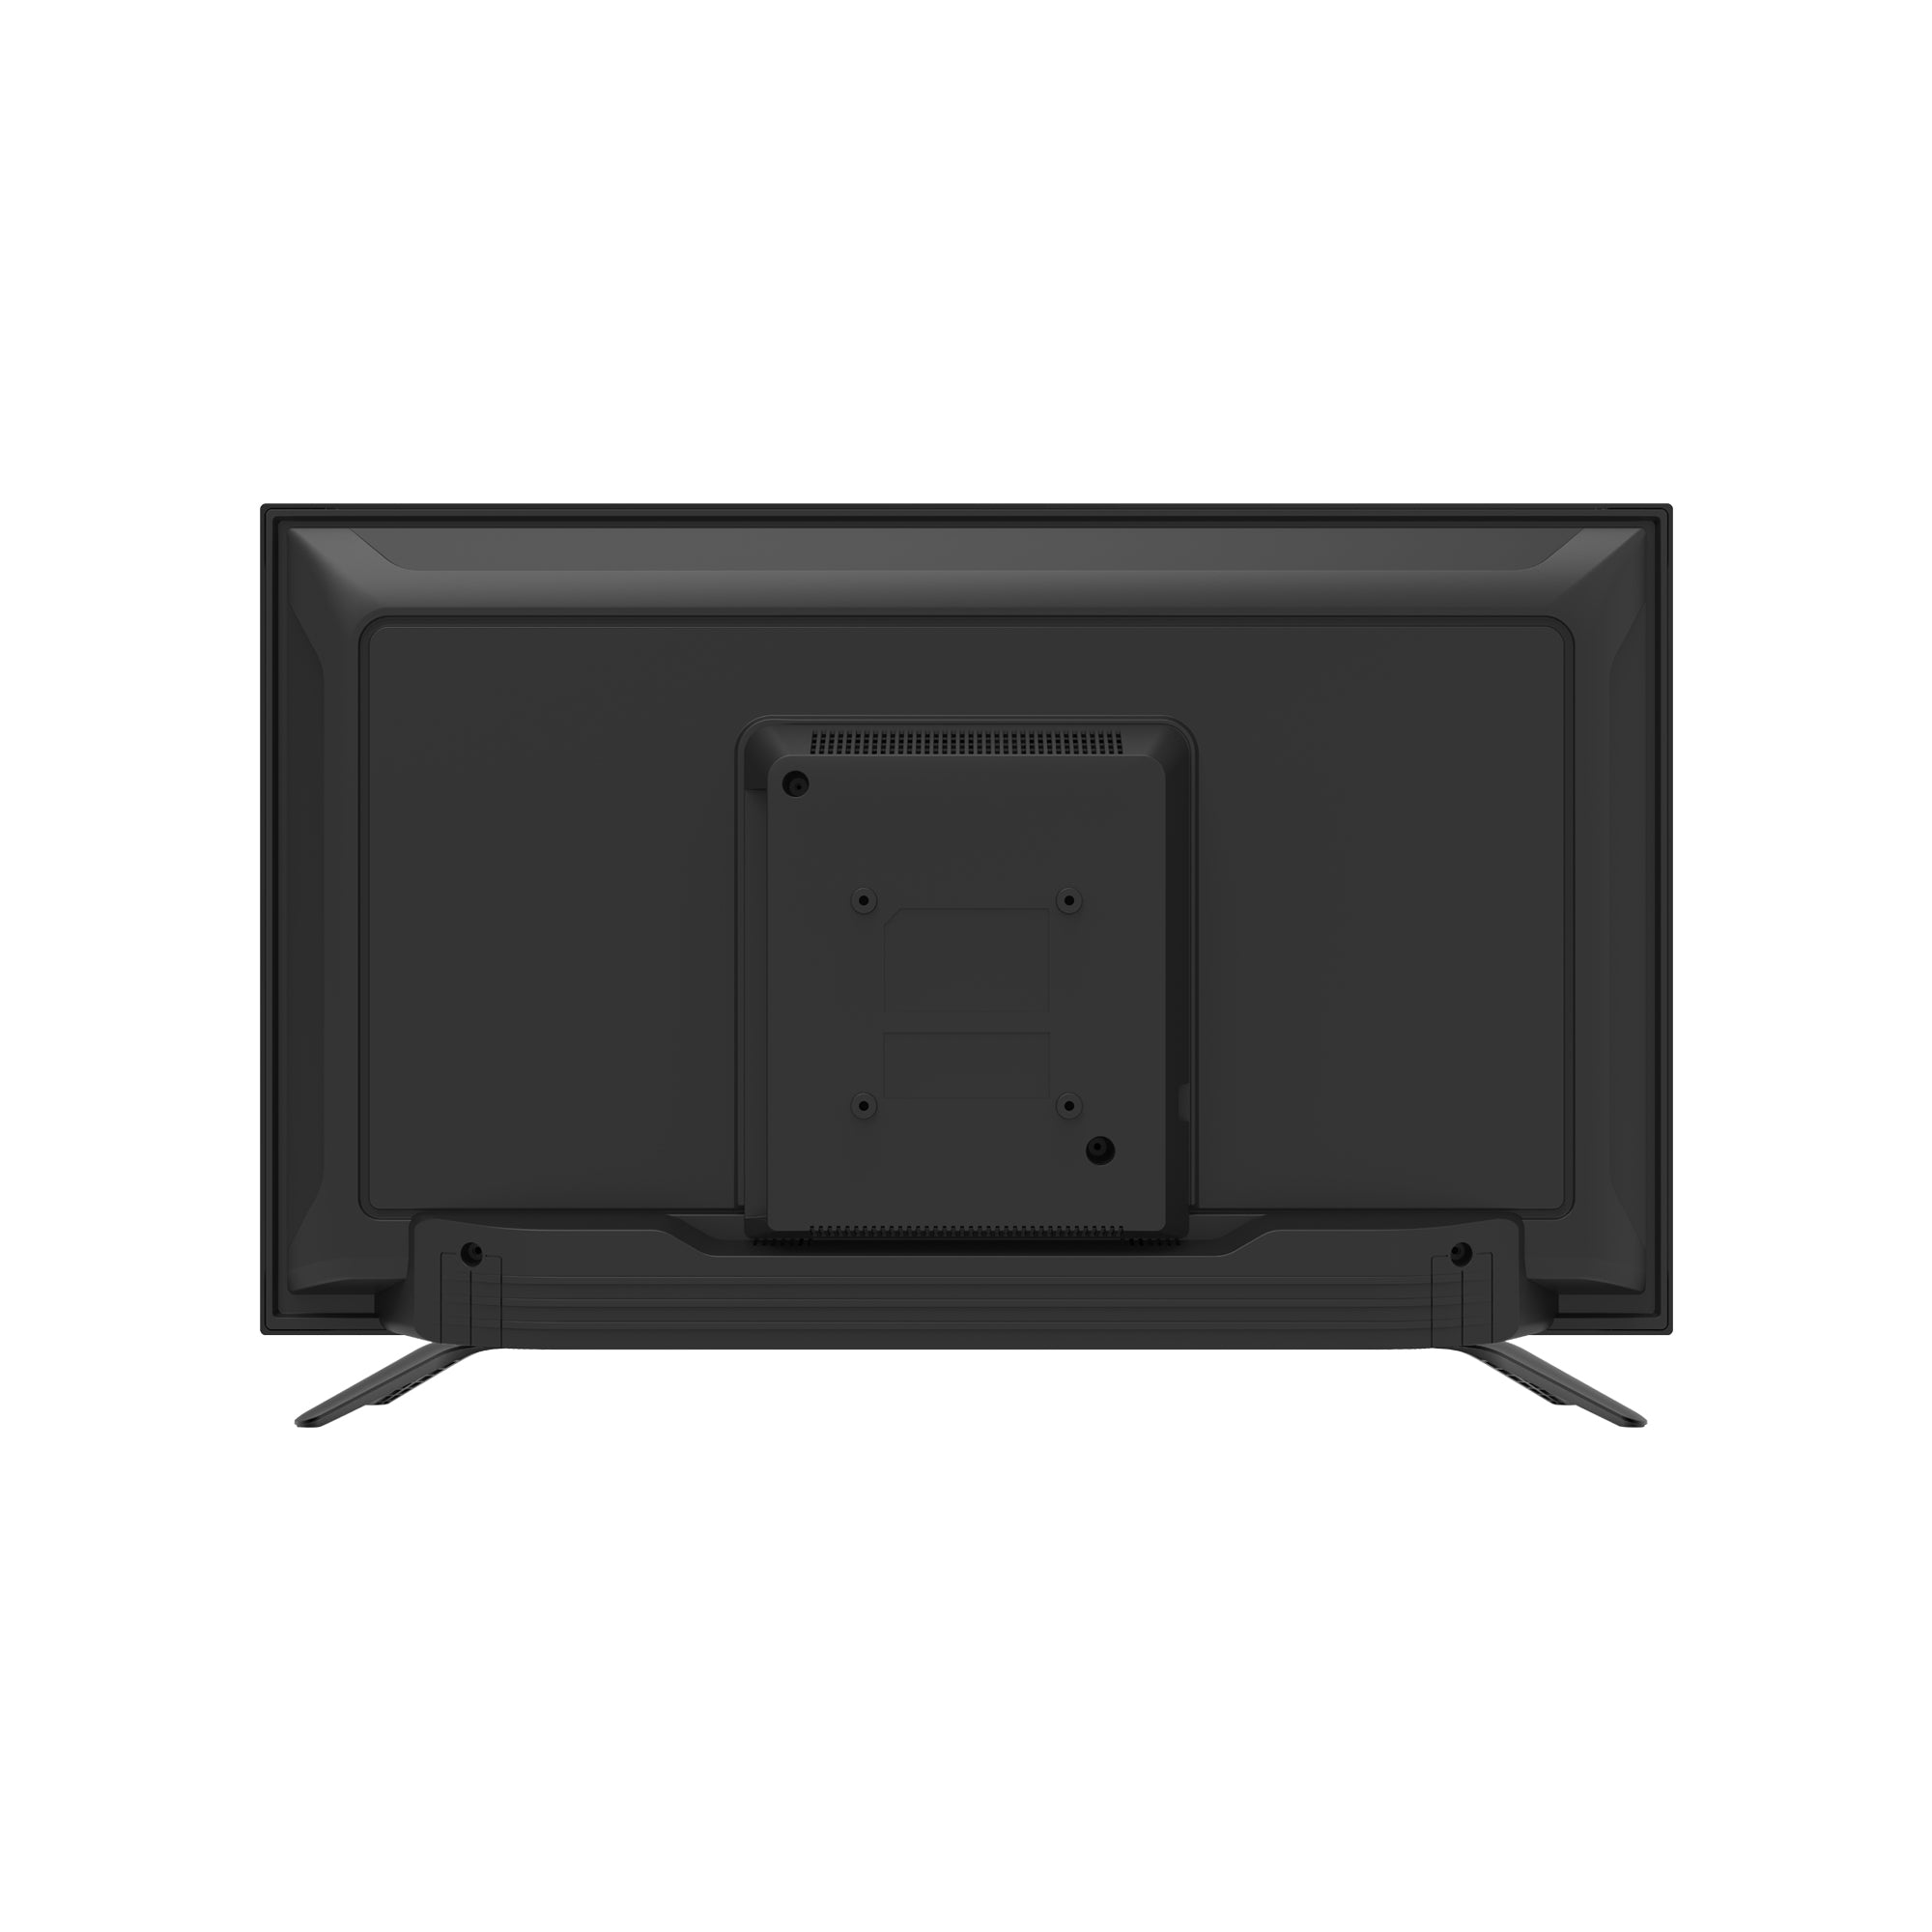 32-inch LED HD TV